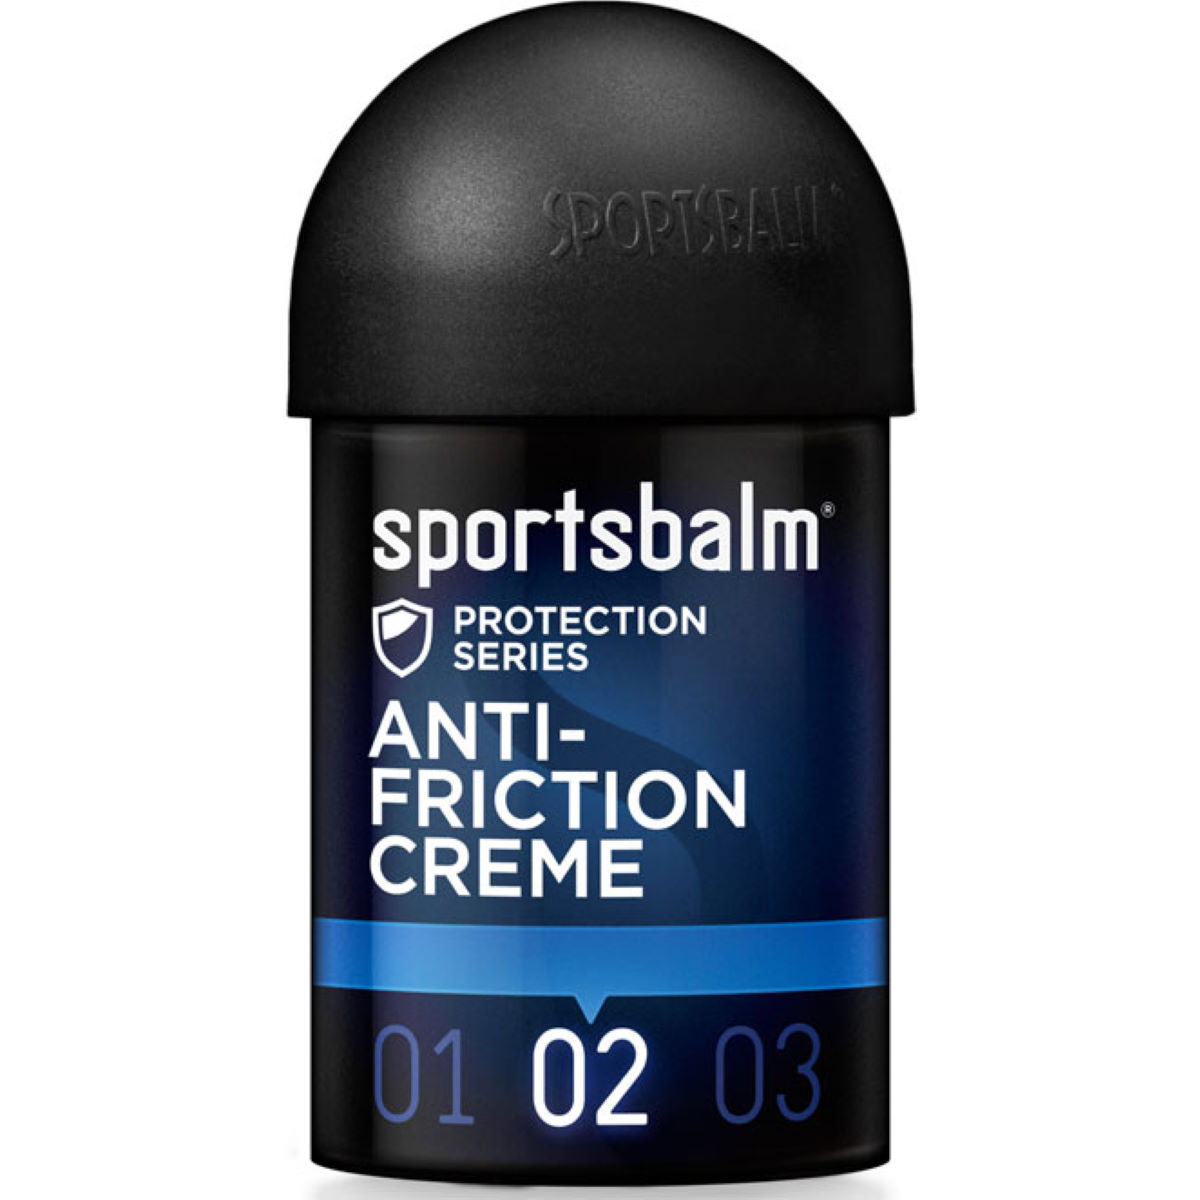 Sportsbalm Protection Series Anti Friction Cream - Cremas para badana